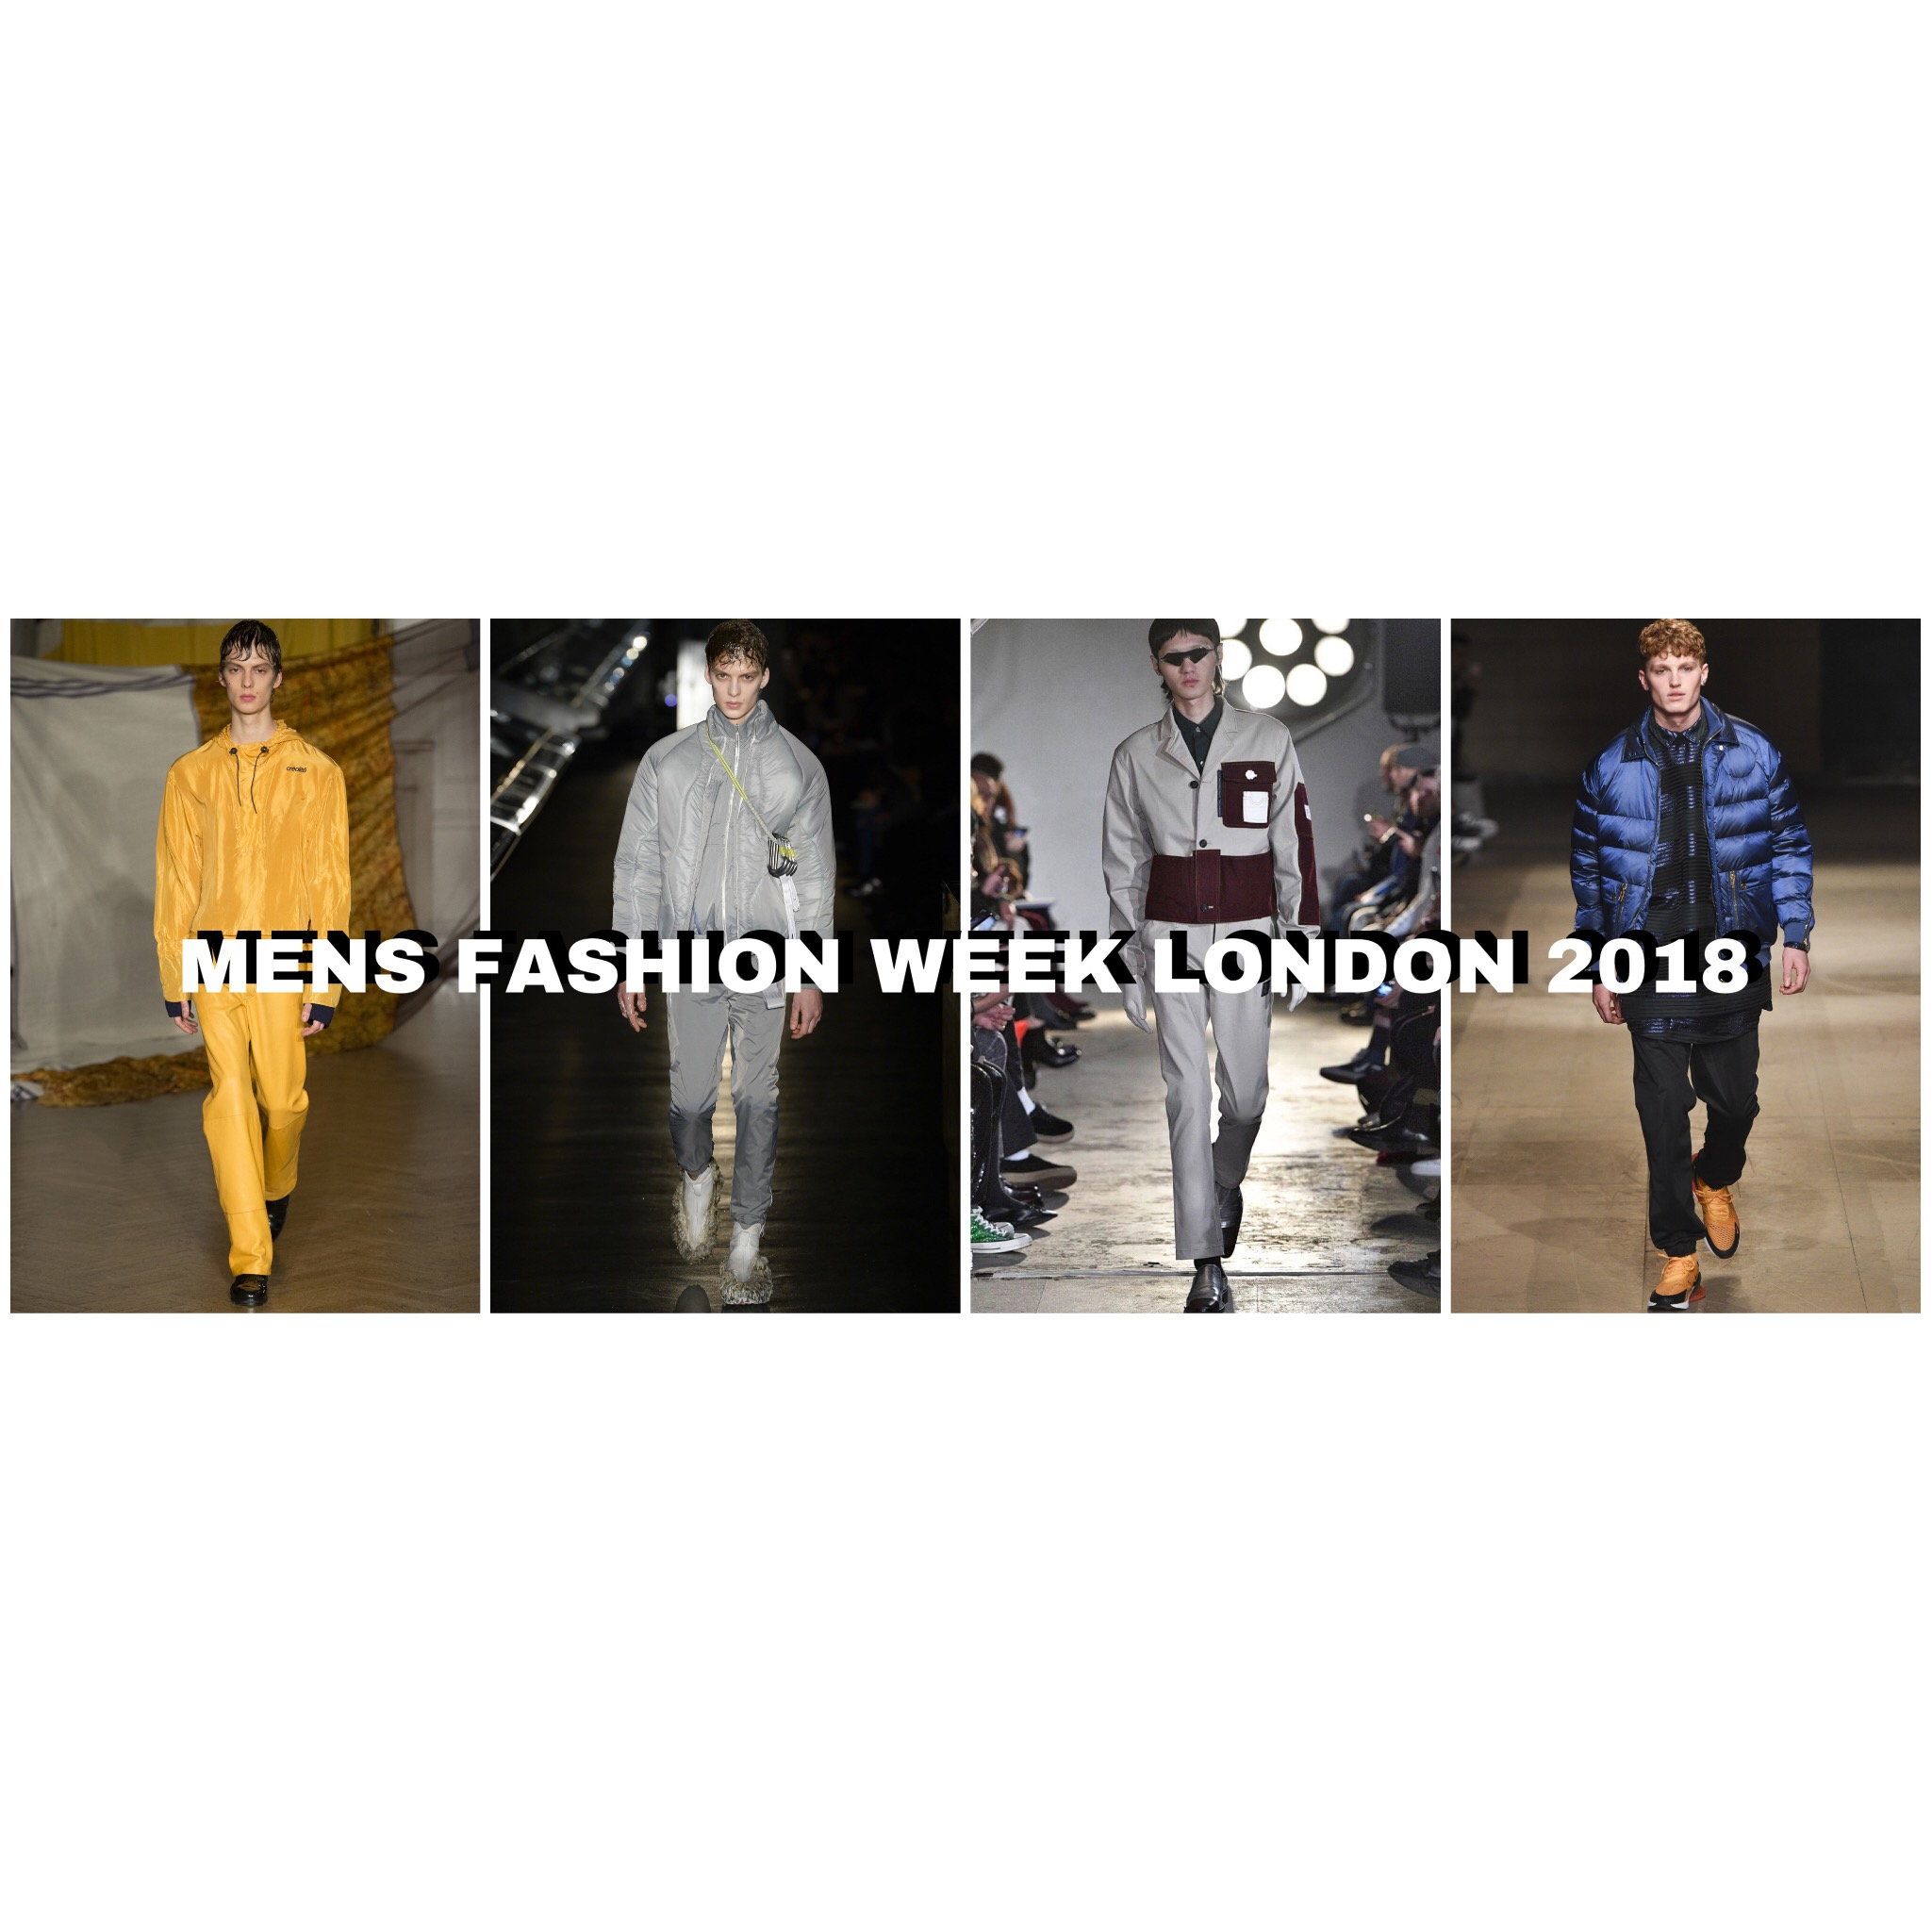 MENS FASHION WEEK LONDON 2018